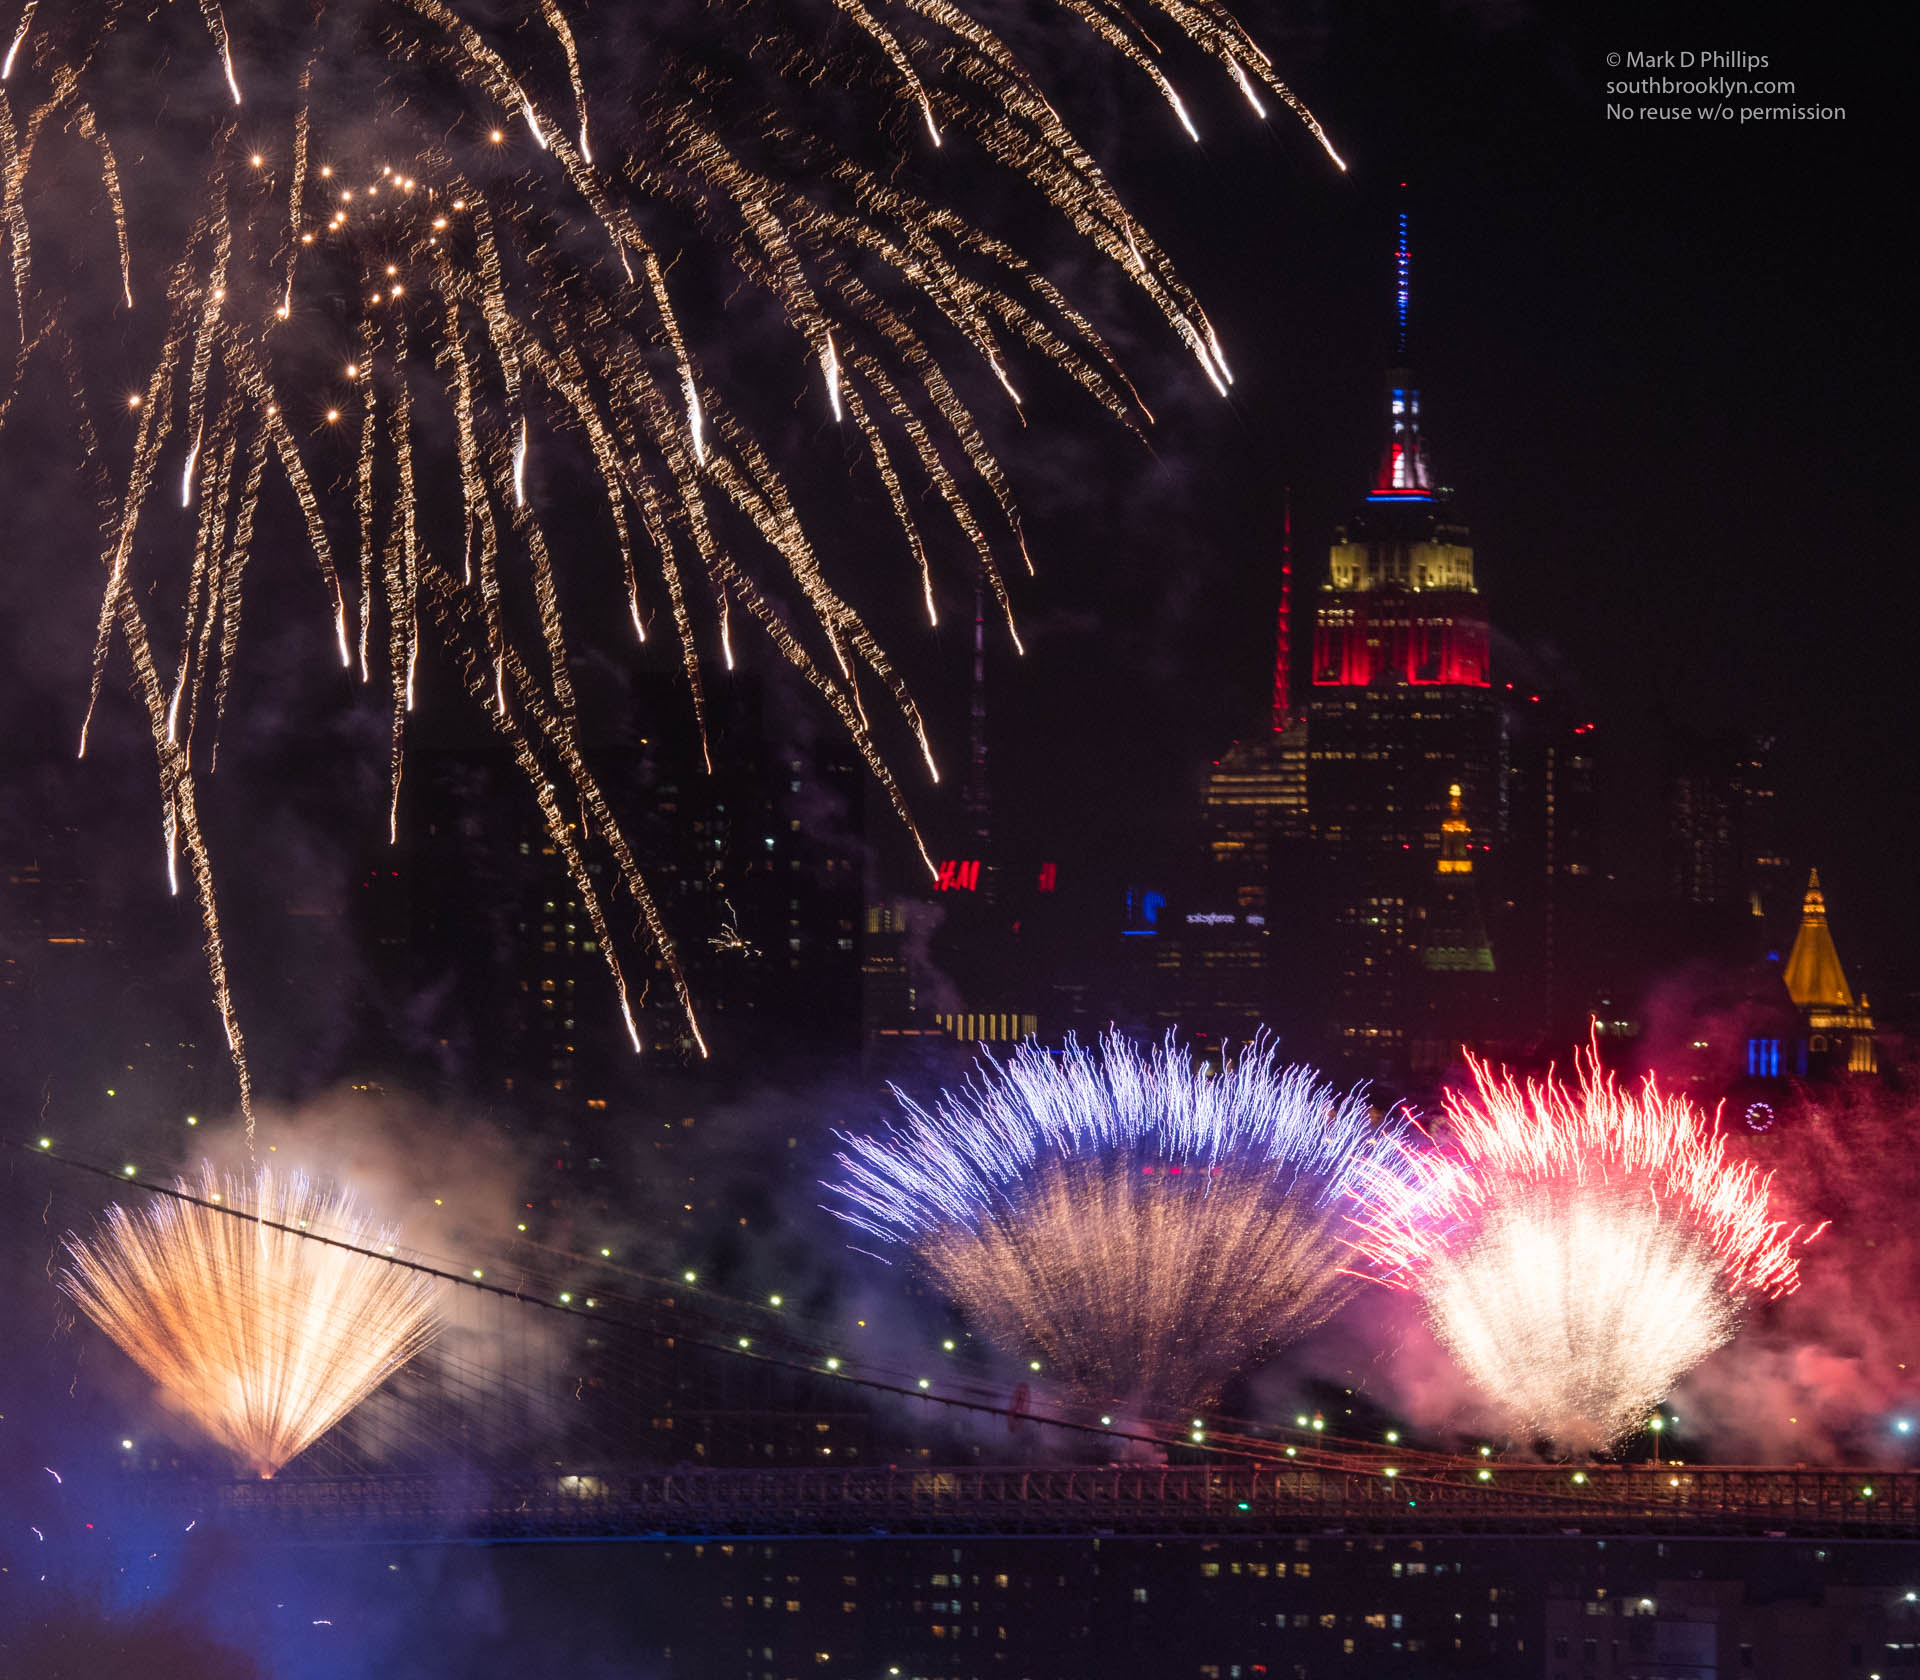 Fans of color burst from the roadway of the Brooklyn Bridge as streamers fall from the sky highlighting the Empire State Building duringThe Macy's 4th of July Fireworks from Brooklyn Bridge Park. ©Mark D Phillips